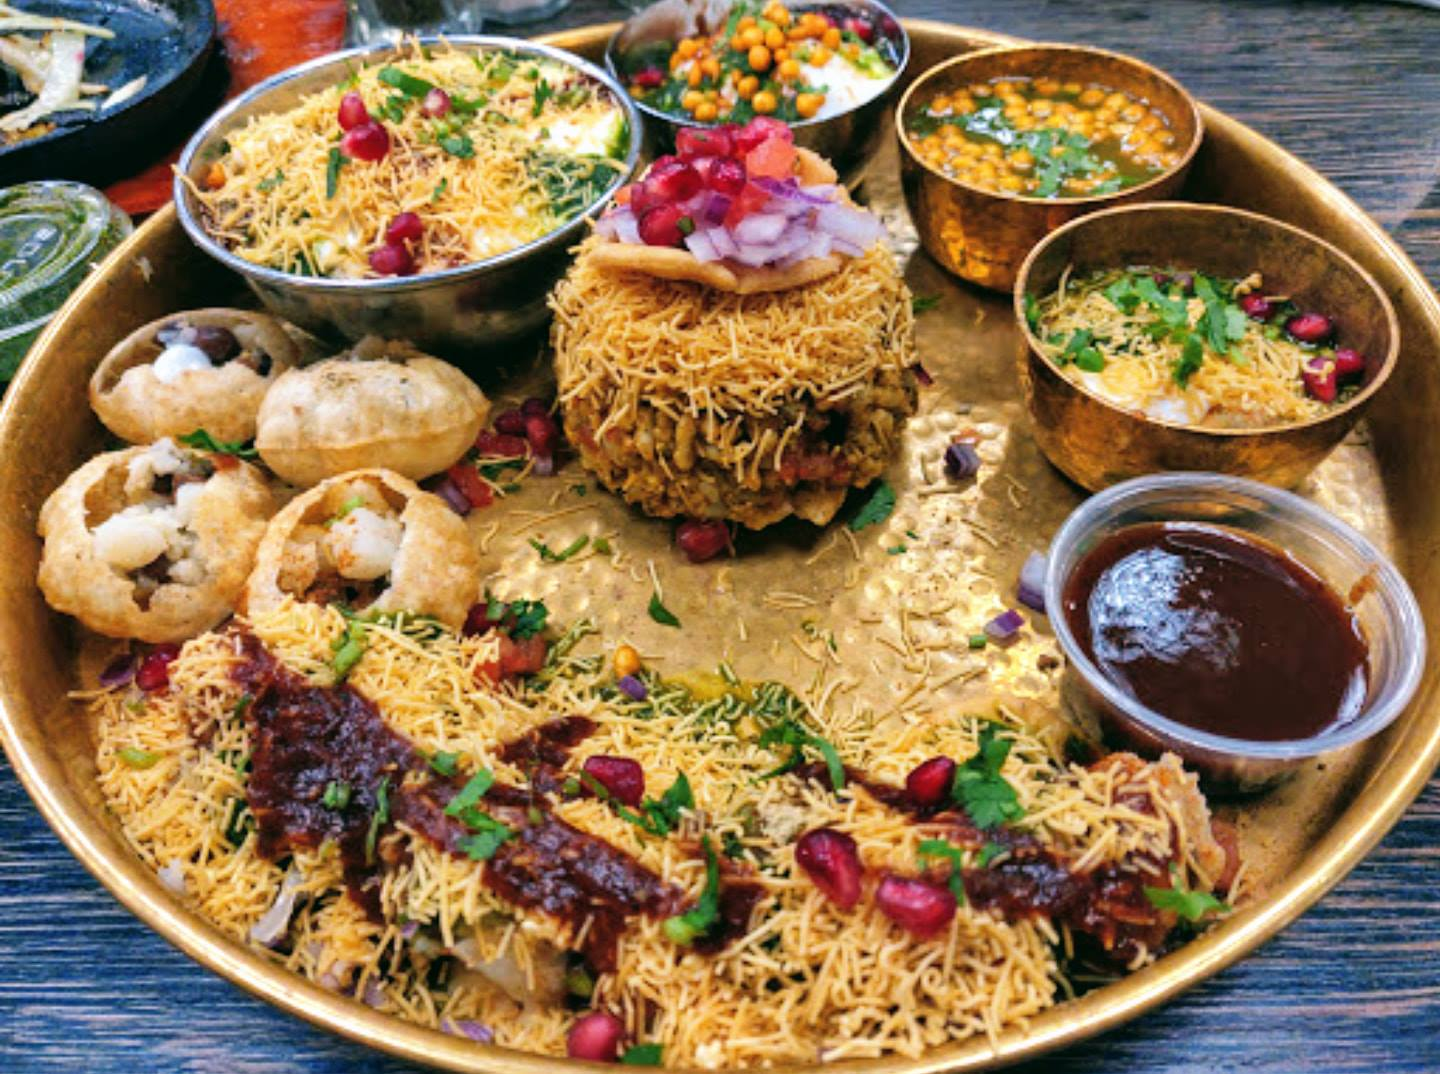 assortment of food items in a large bowl